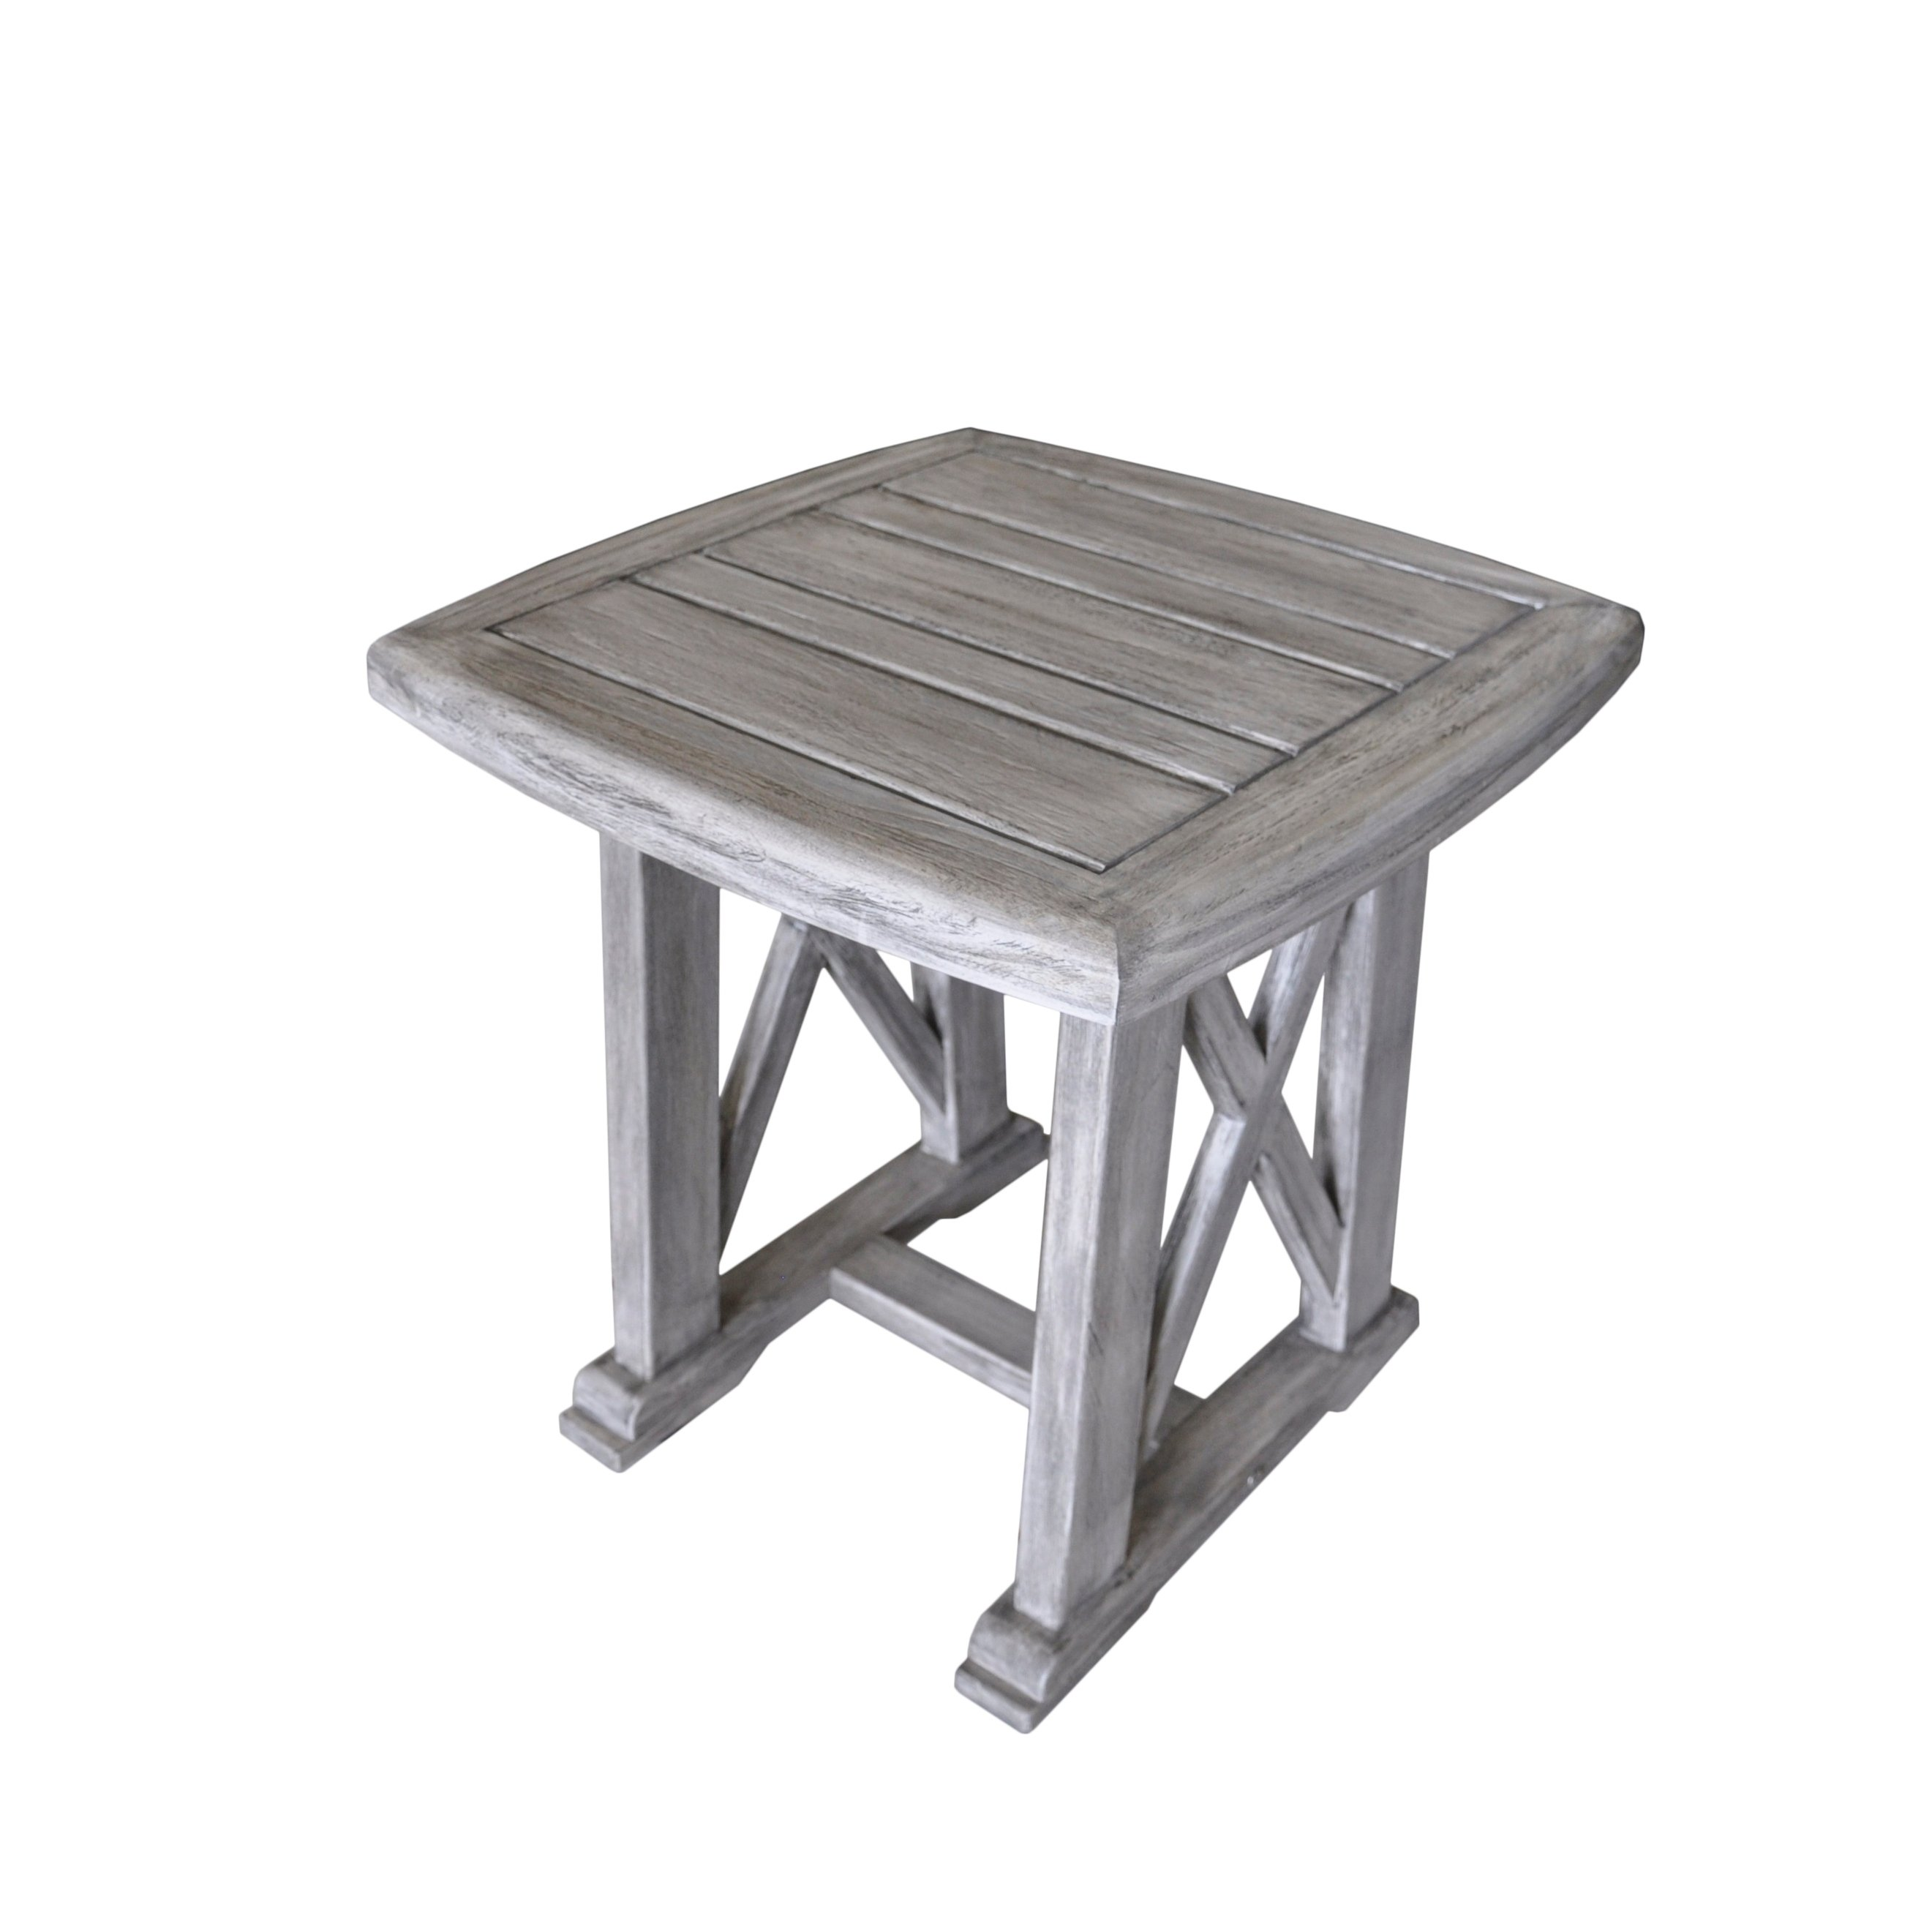 havenside home surfside driftwood grey teak deck end table courtyard casual gray surf side outdoor free shipping today and yellow rug high gloss unfinished dining legs mirrored